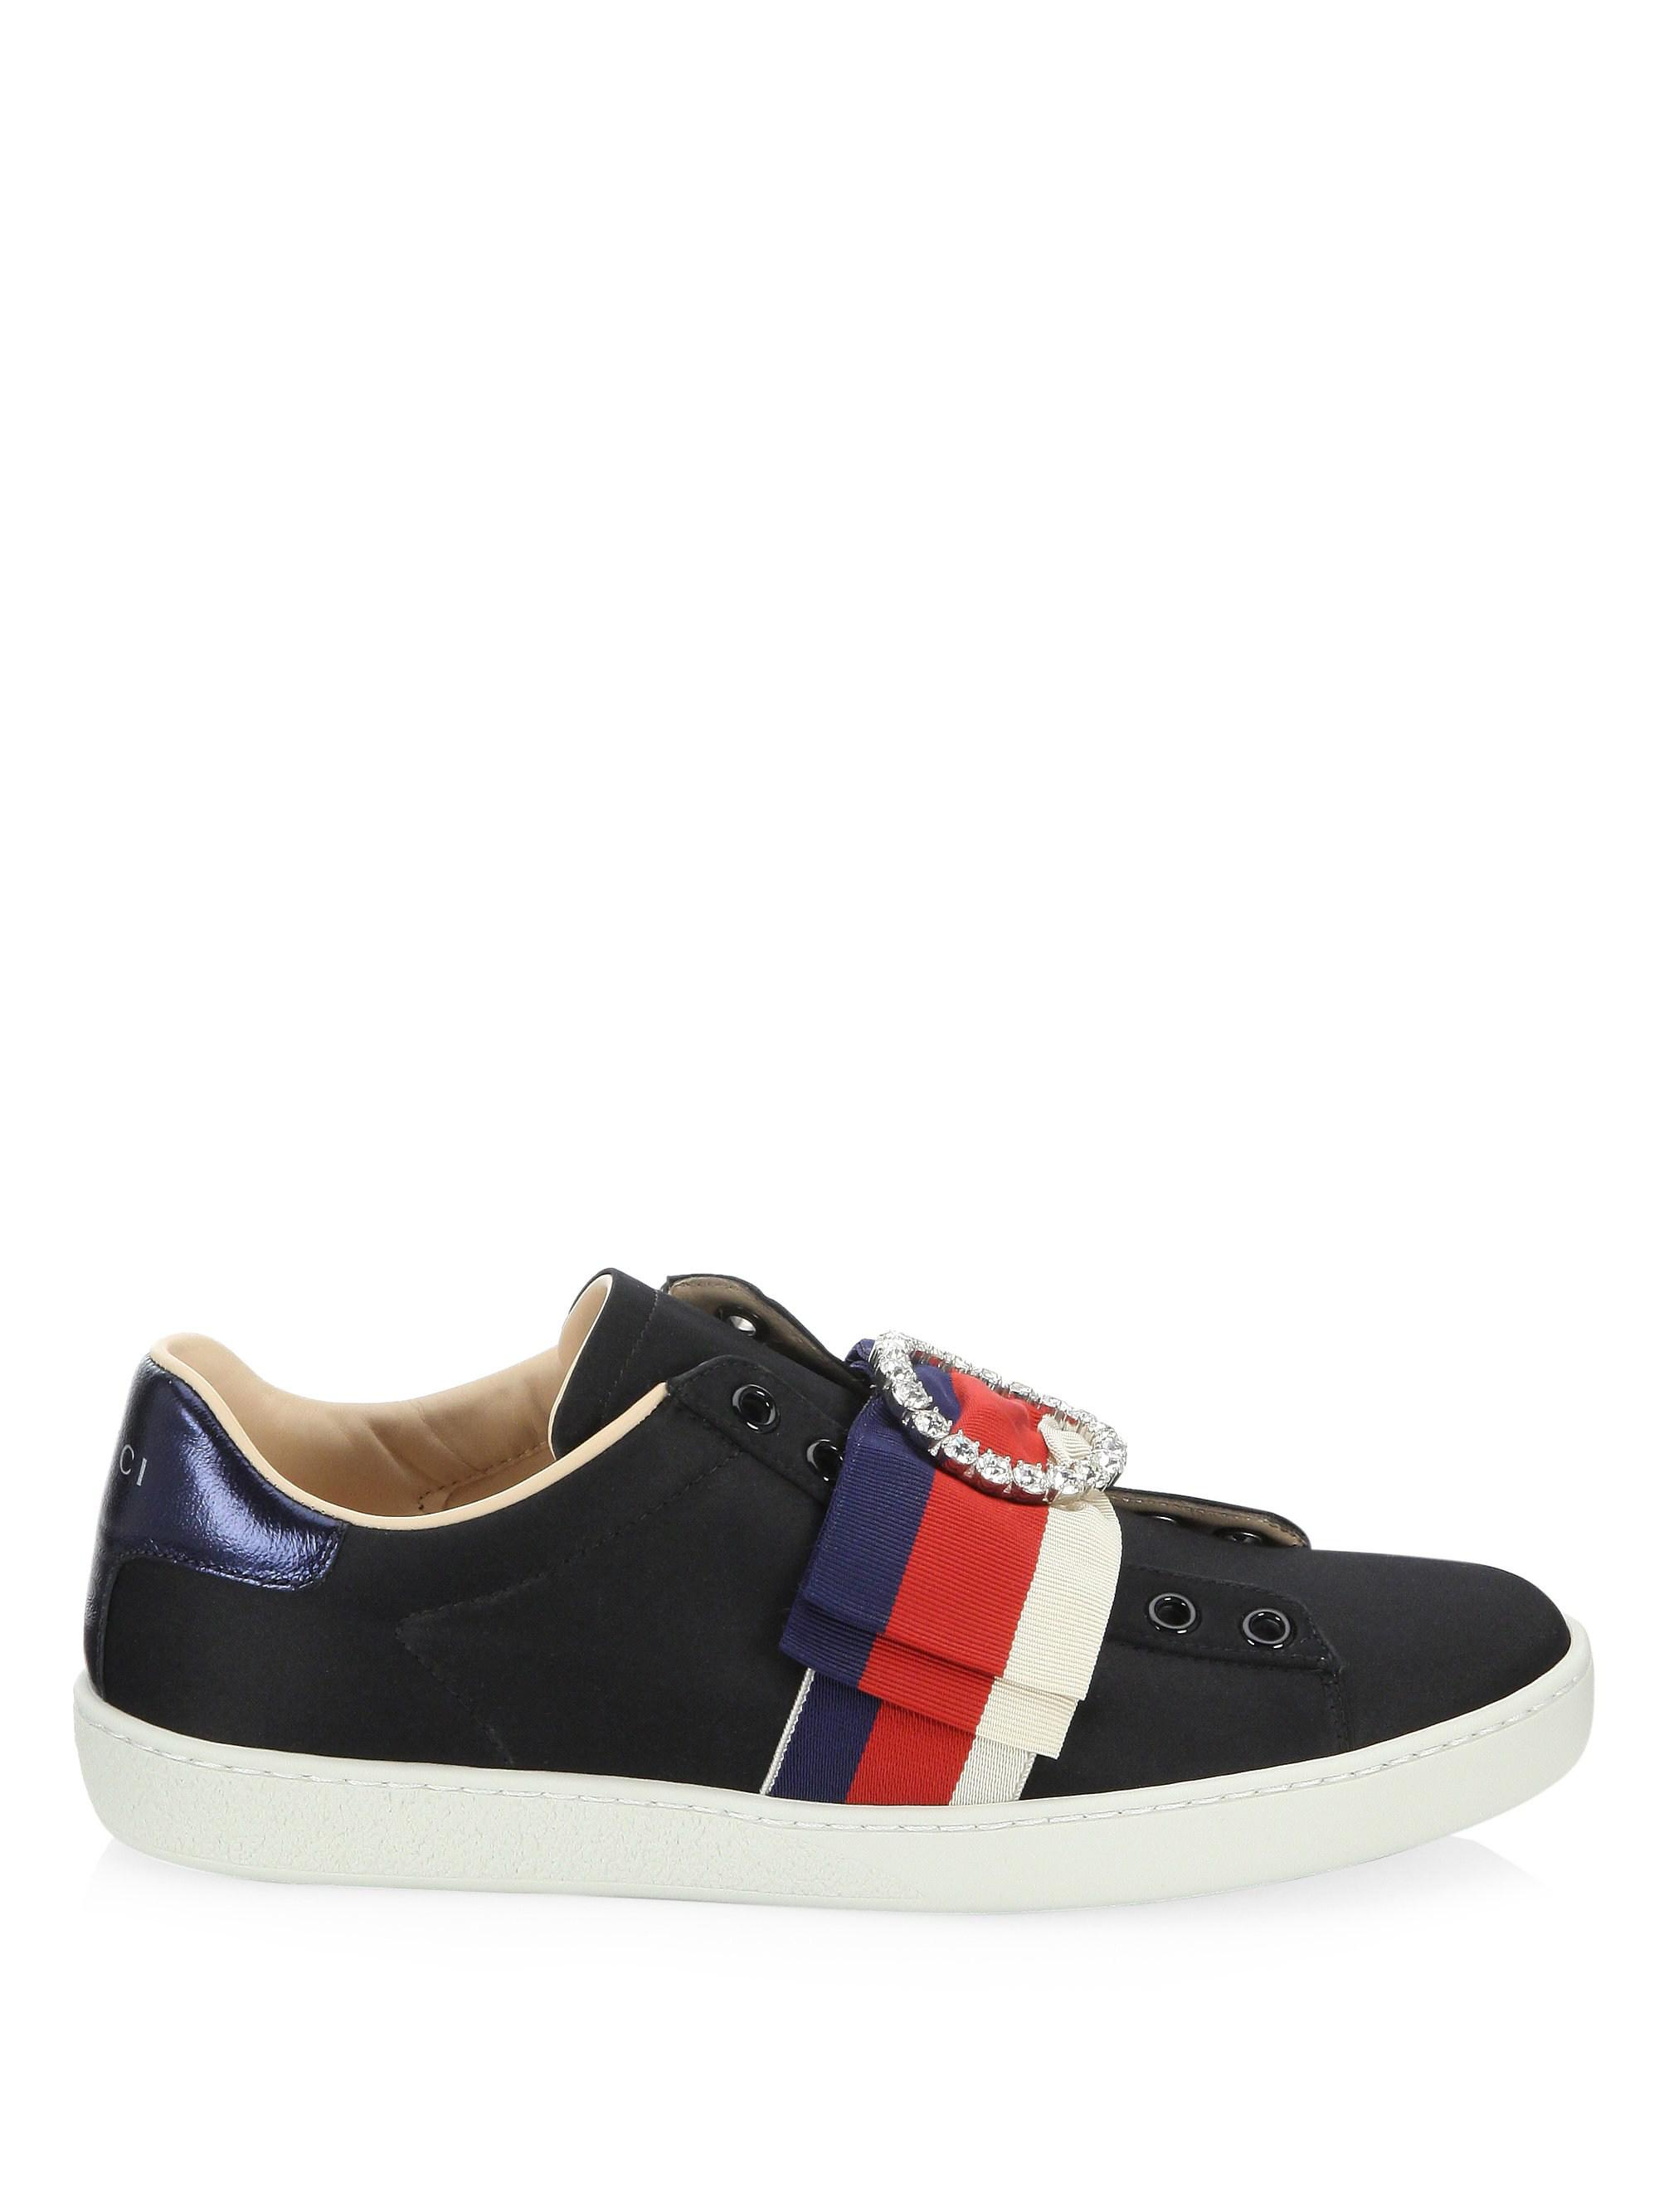 b98631013f2 Lyst - Gucci New Ace Laceless Sneakers in Black